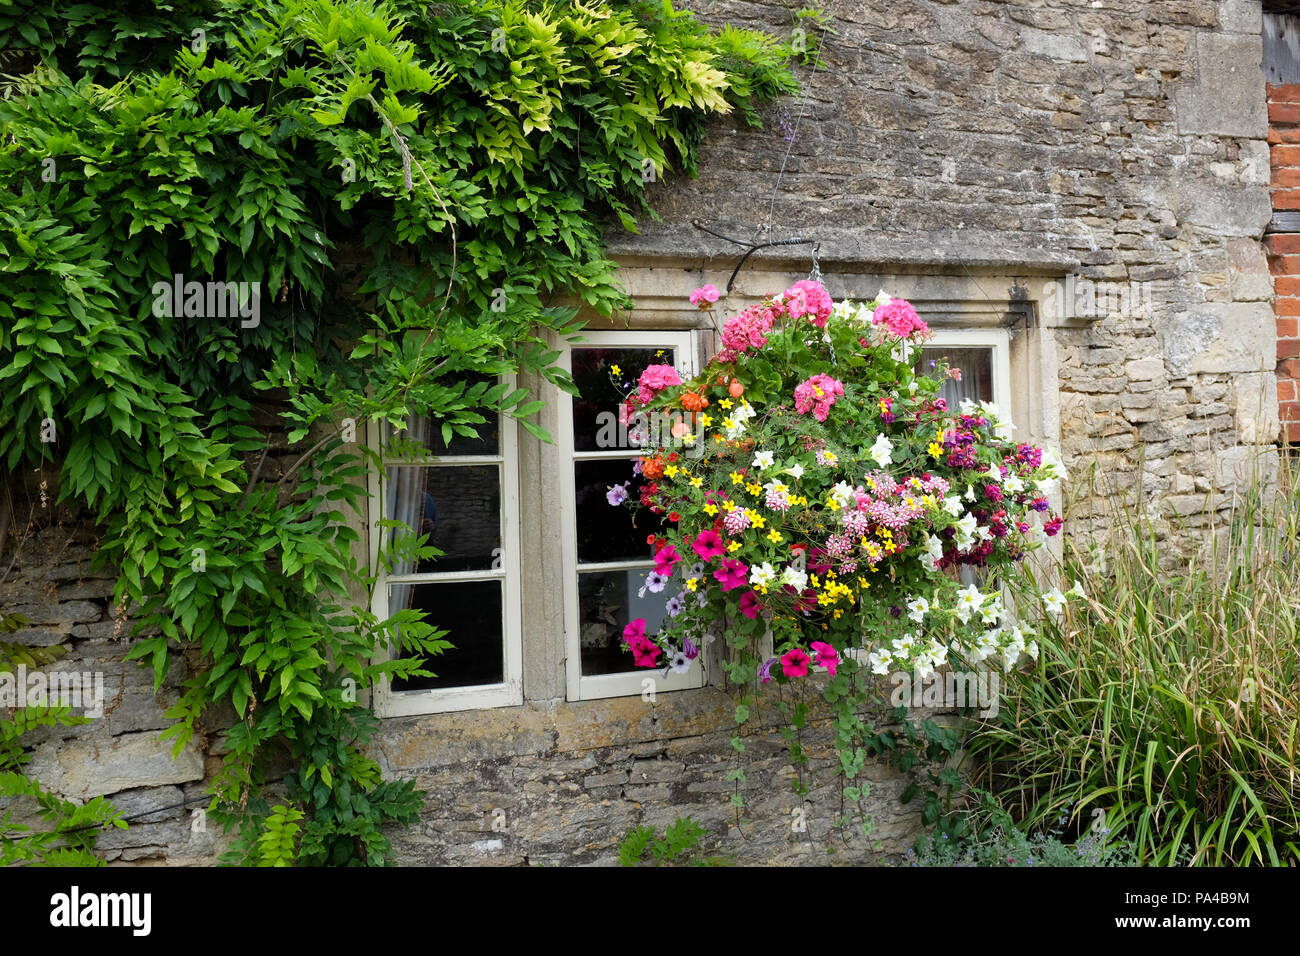 Hanging baskets in the village of Lacock in Wiltshire, England. - Stock Image